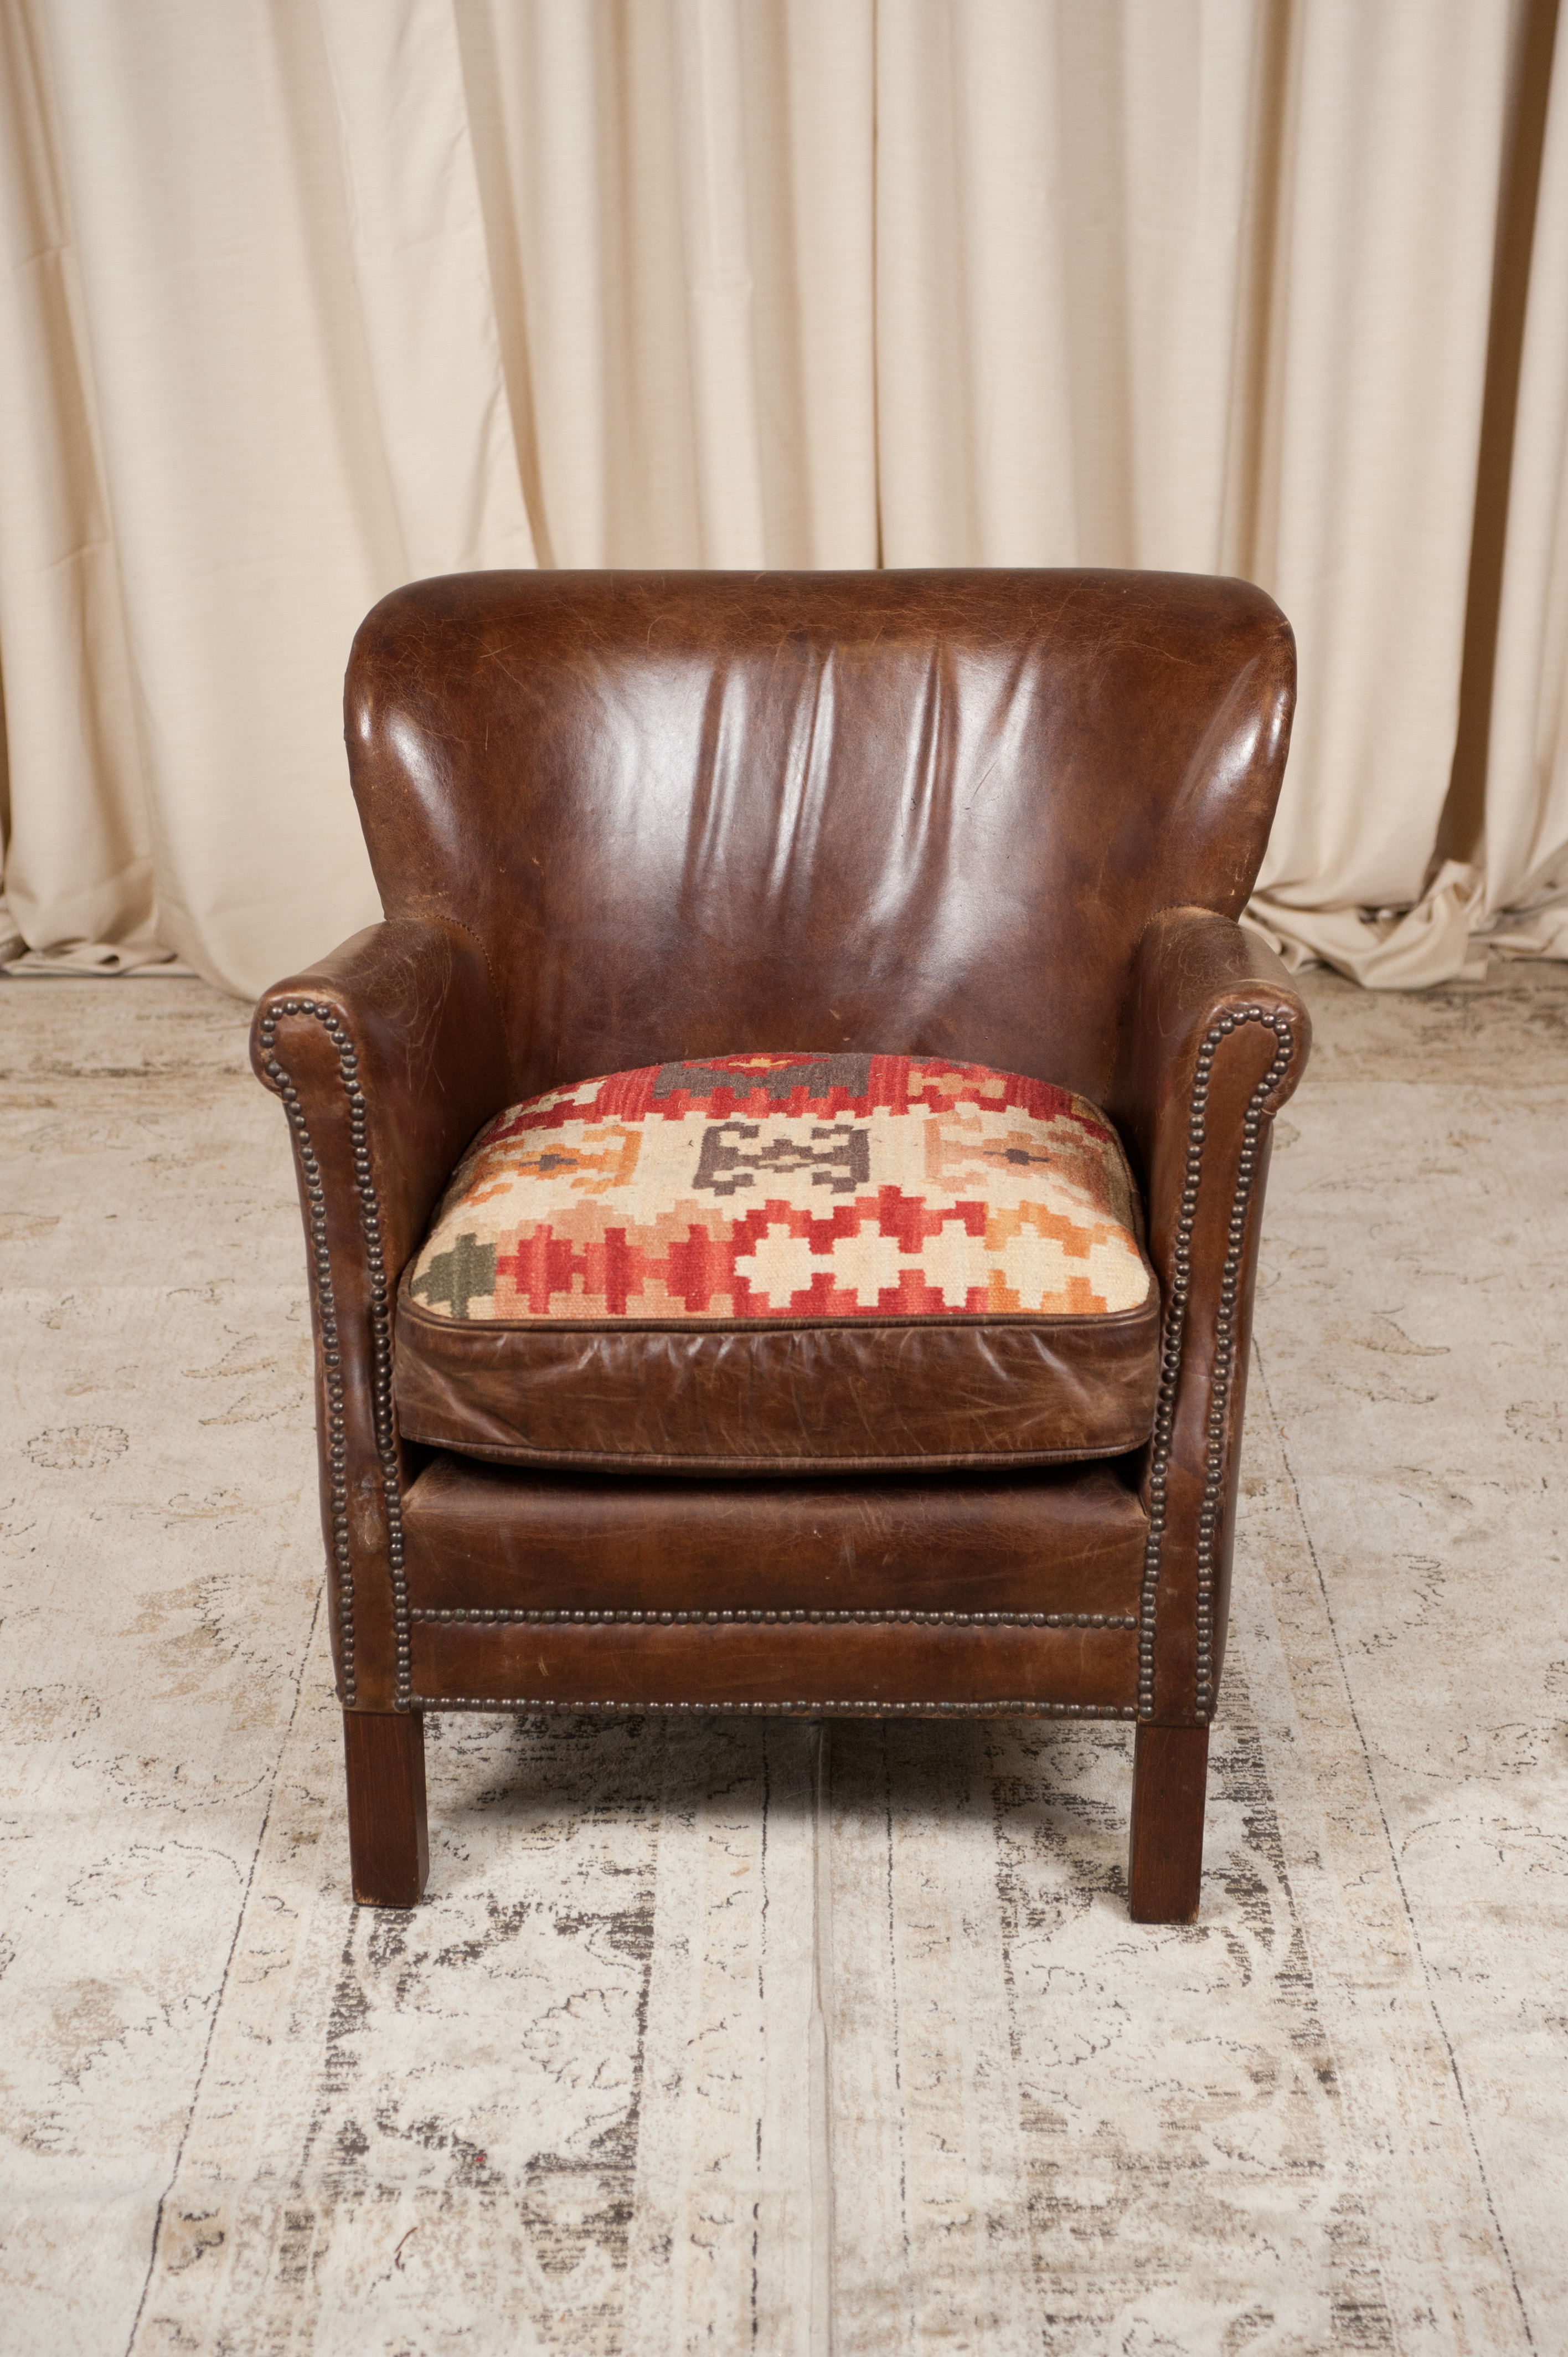 Incredible Brown Leather Armchair With Kilim Seat Download Free Architecture Designs Rallybritishbridgeorg